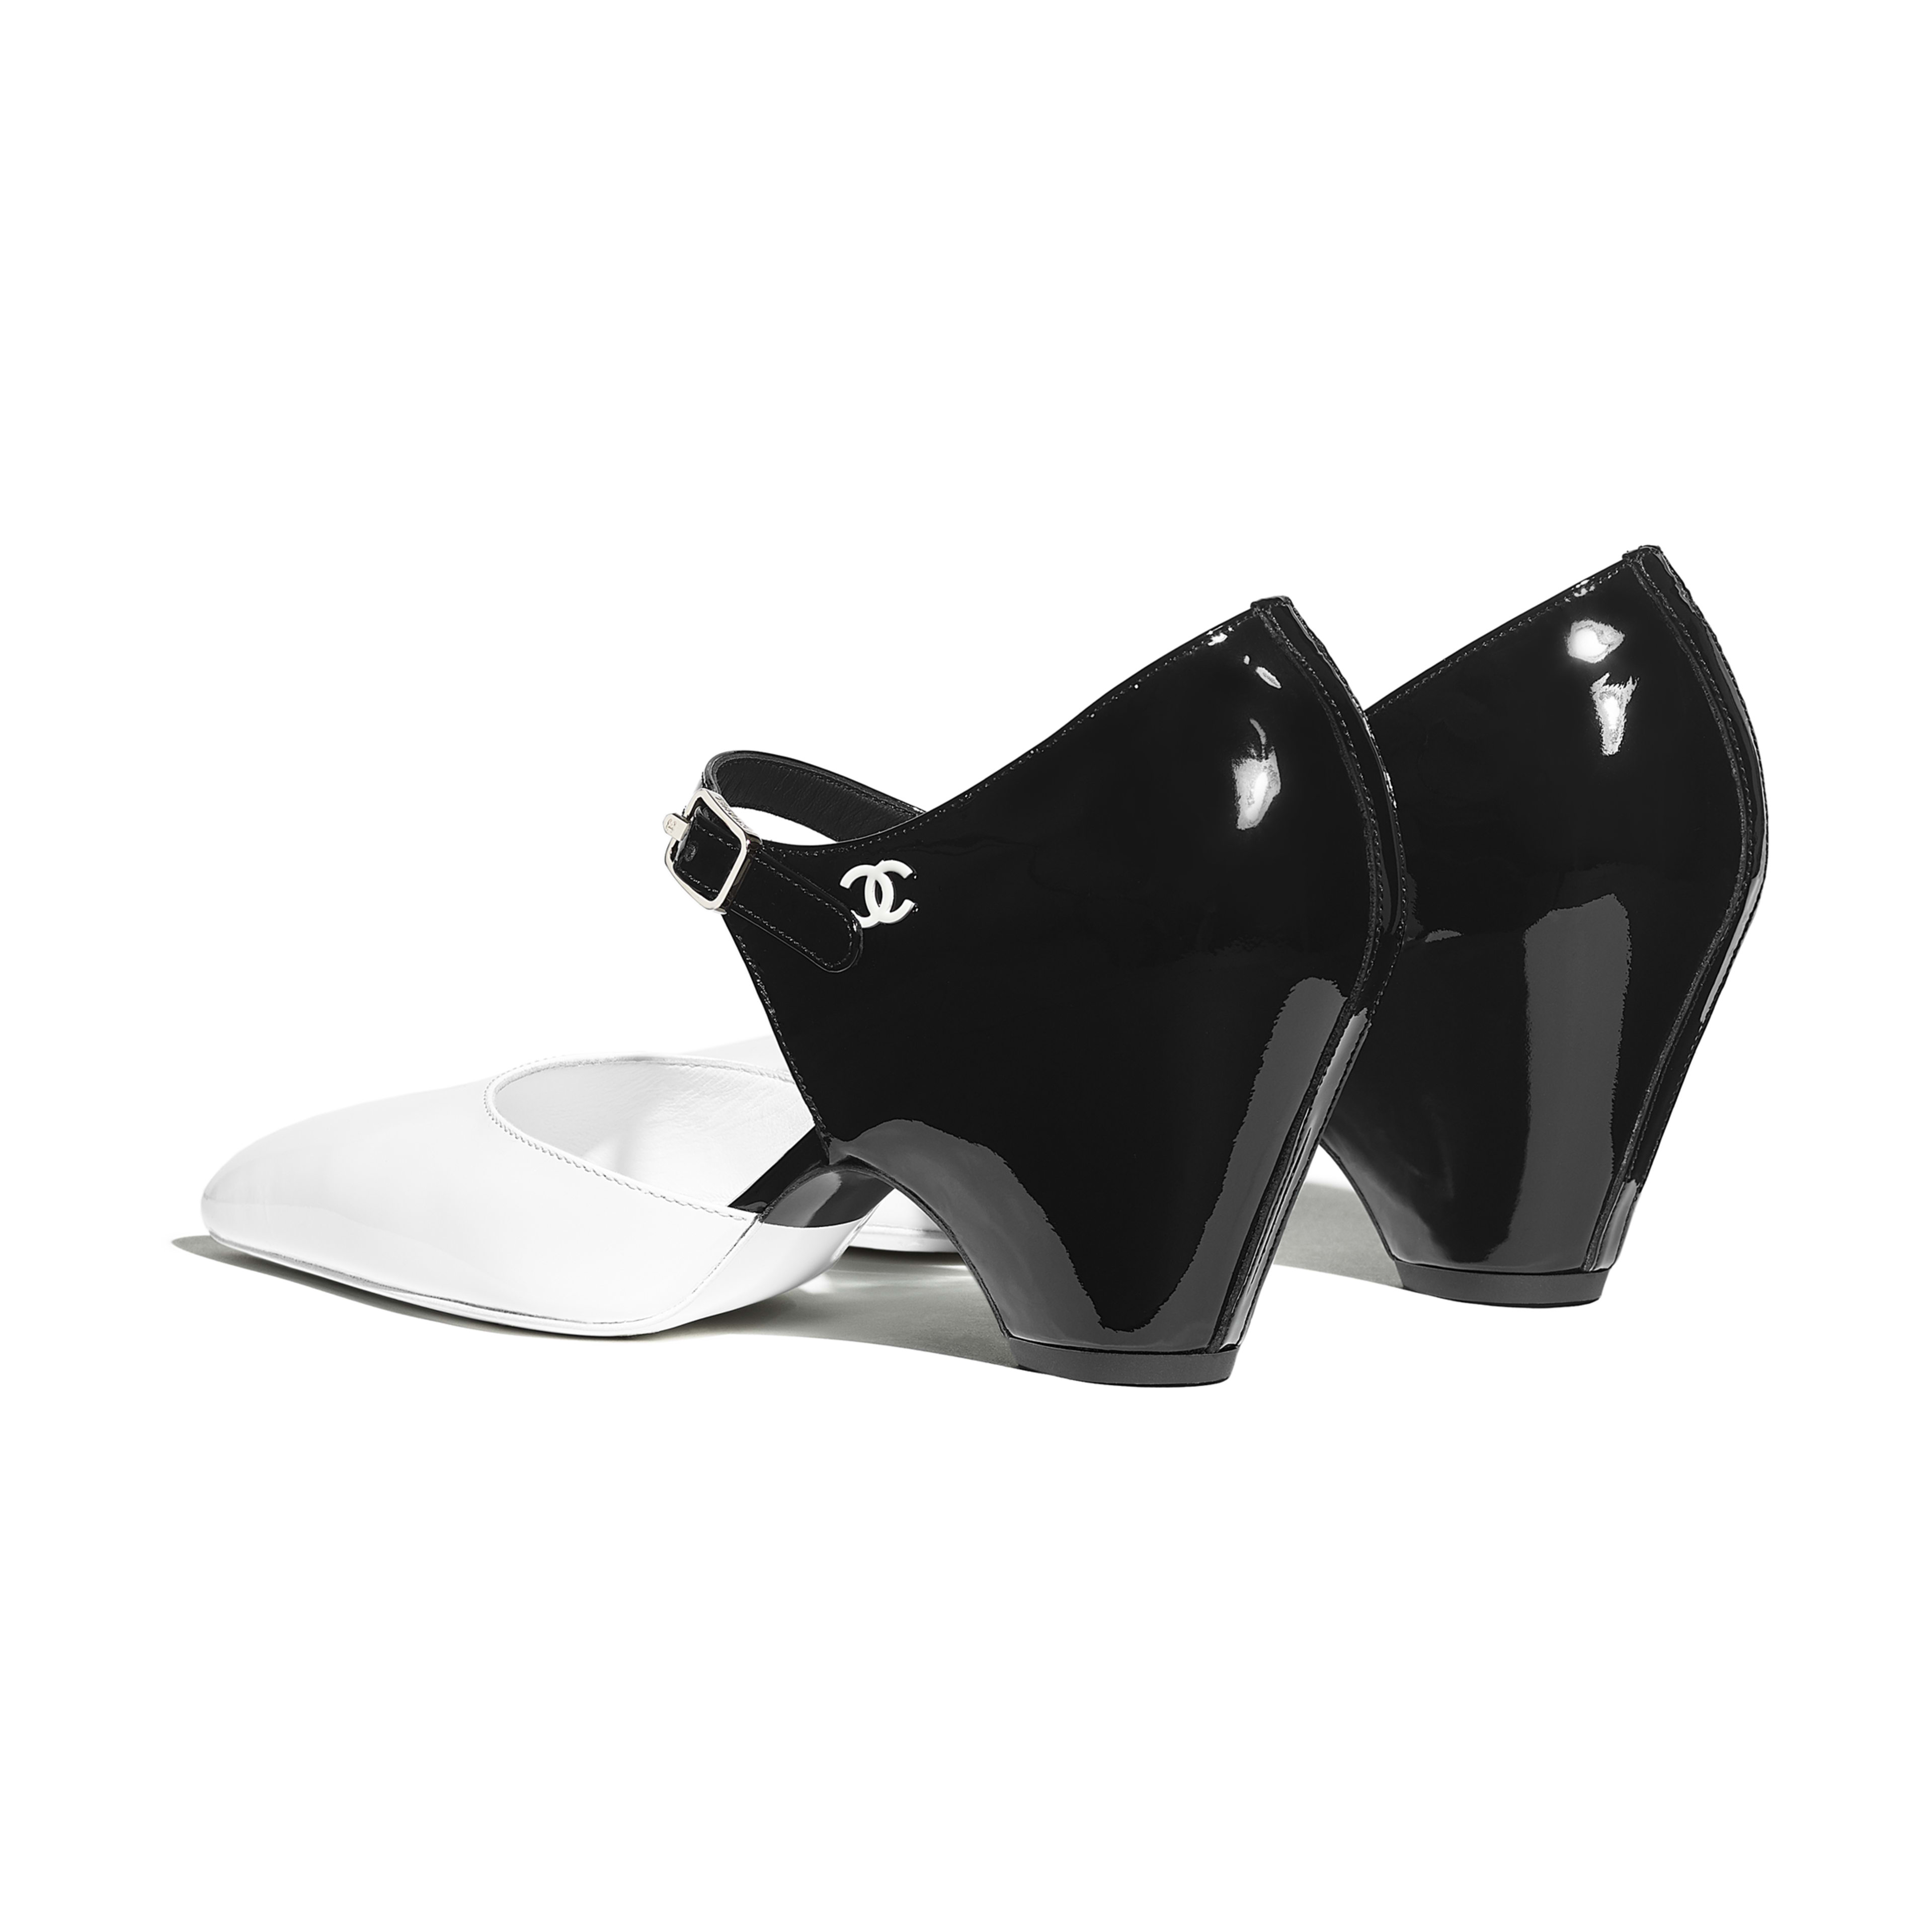 Pumps - White & Black - Patent Calfskin - Other view - see full sized version